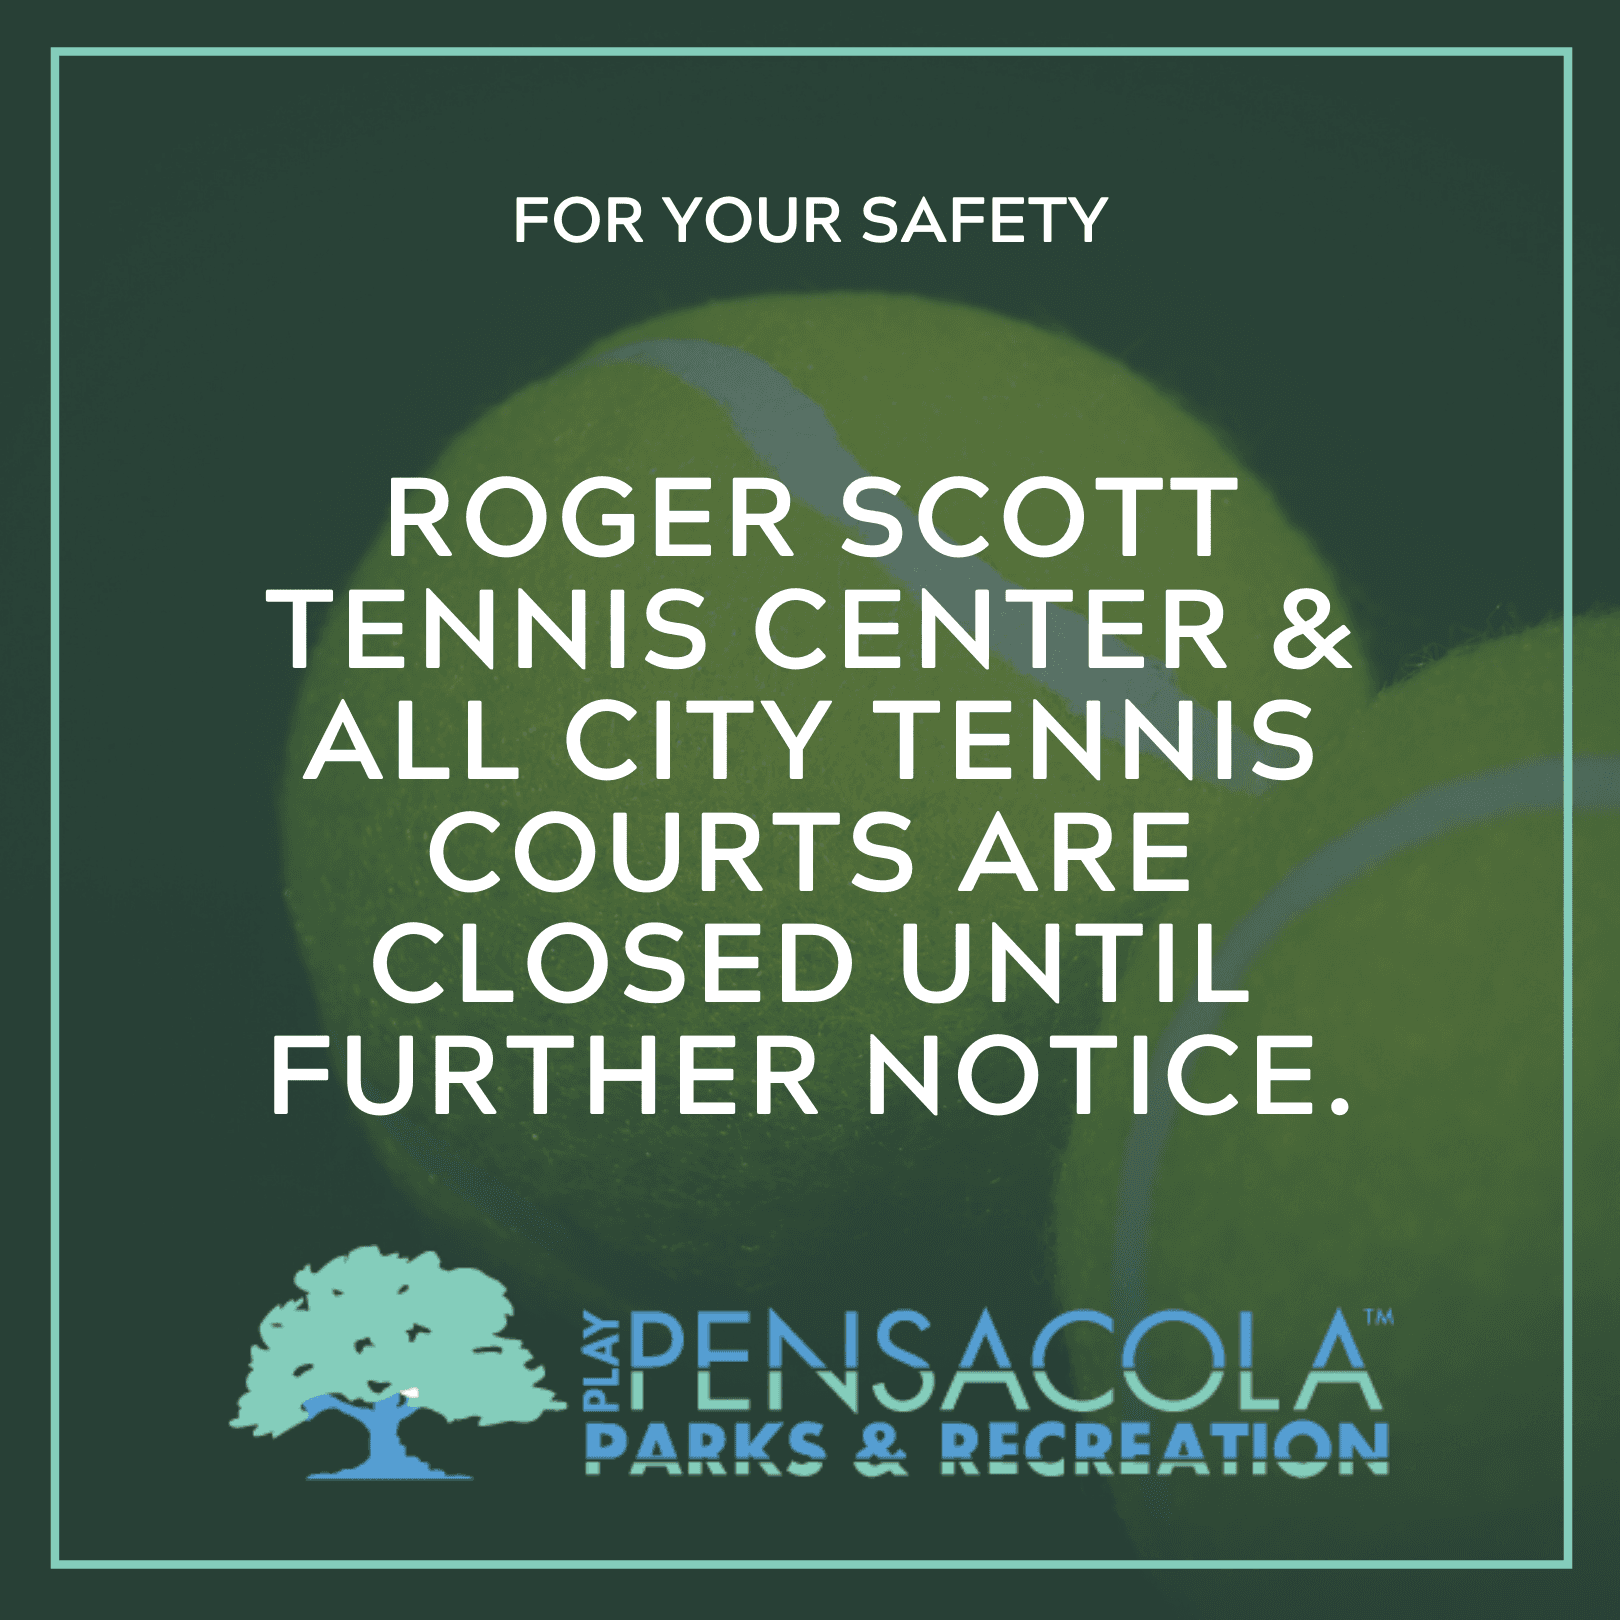 For your safety: Roger Scott Tennis Center and all city tennis courts are closed until further notic